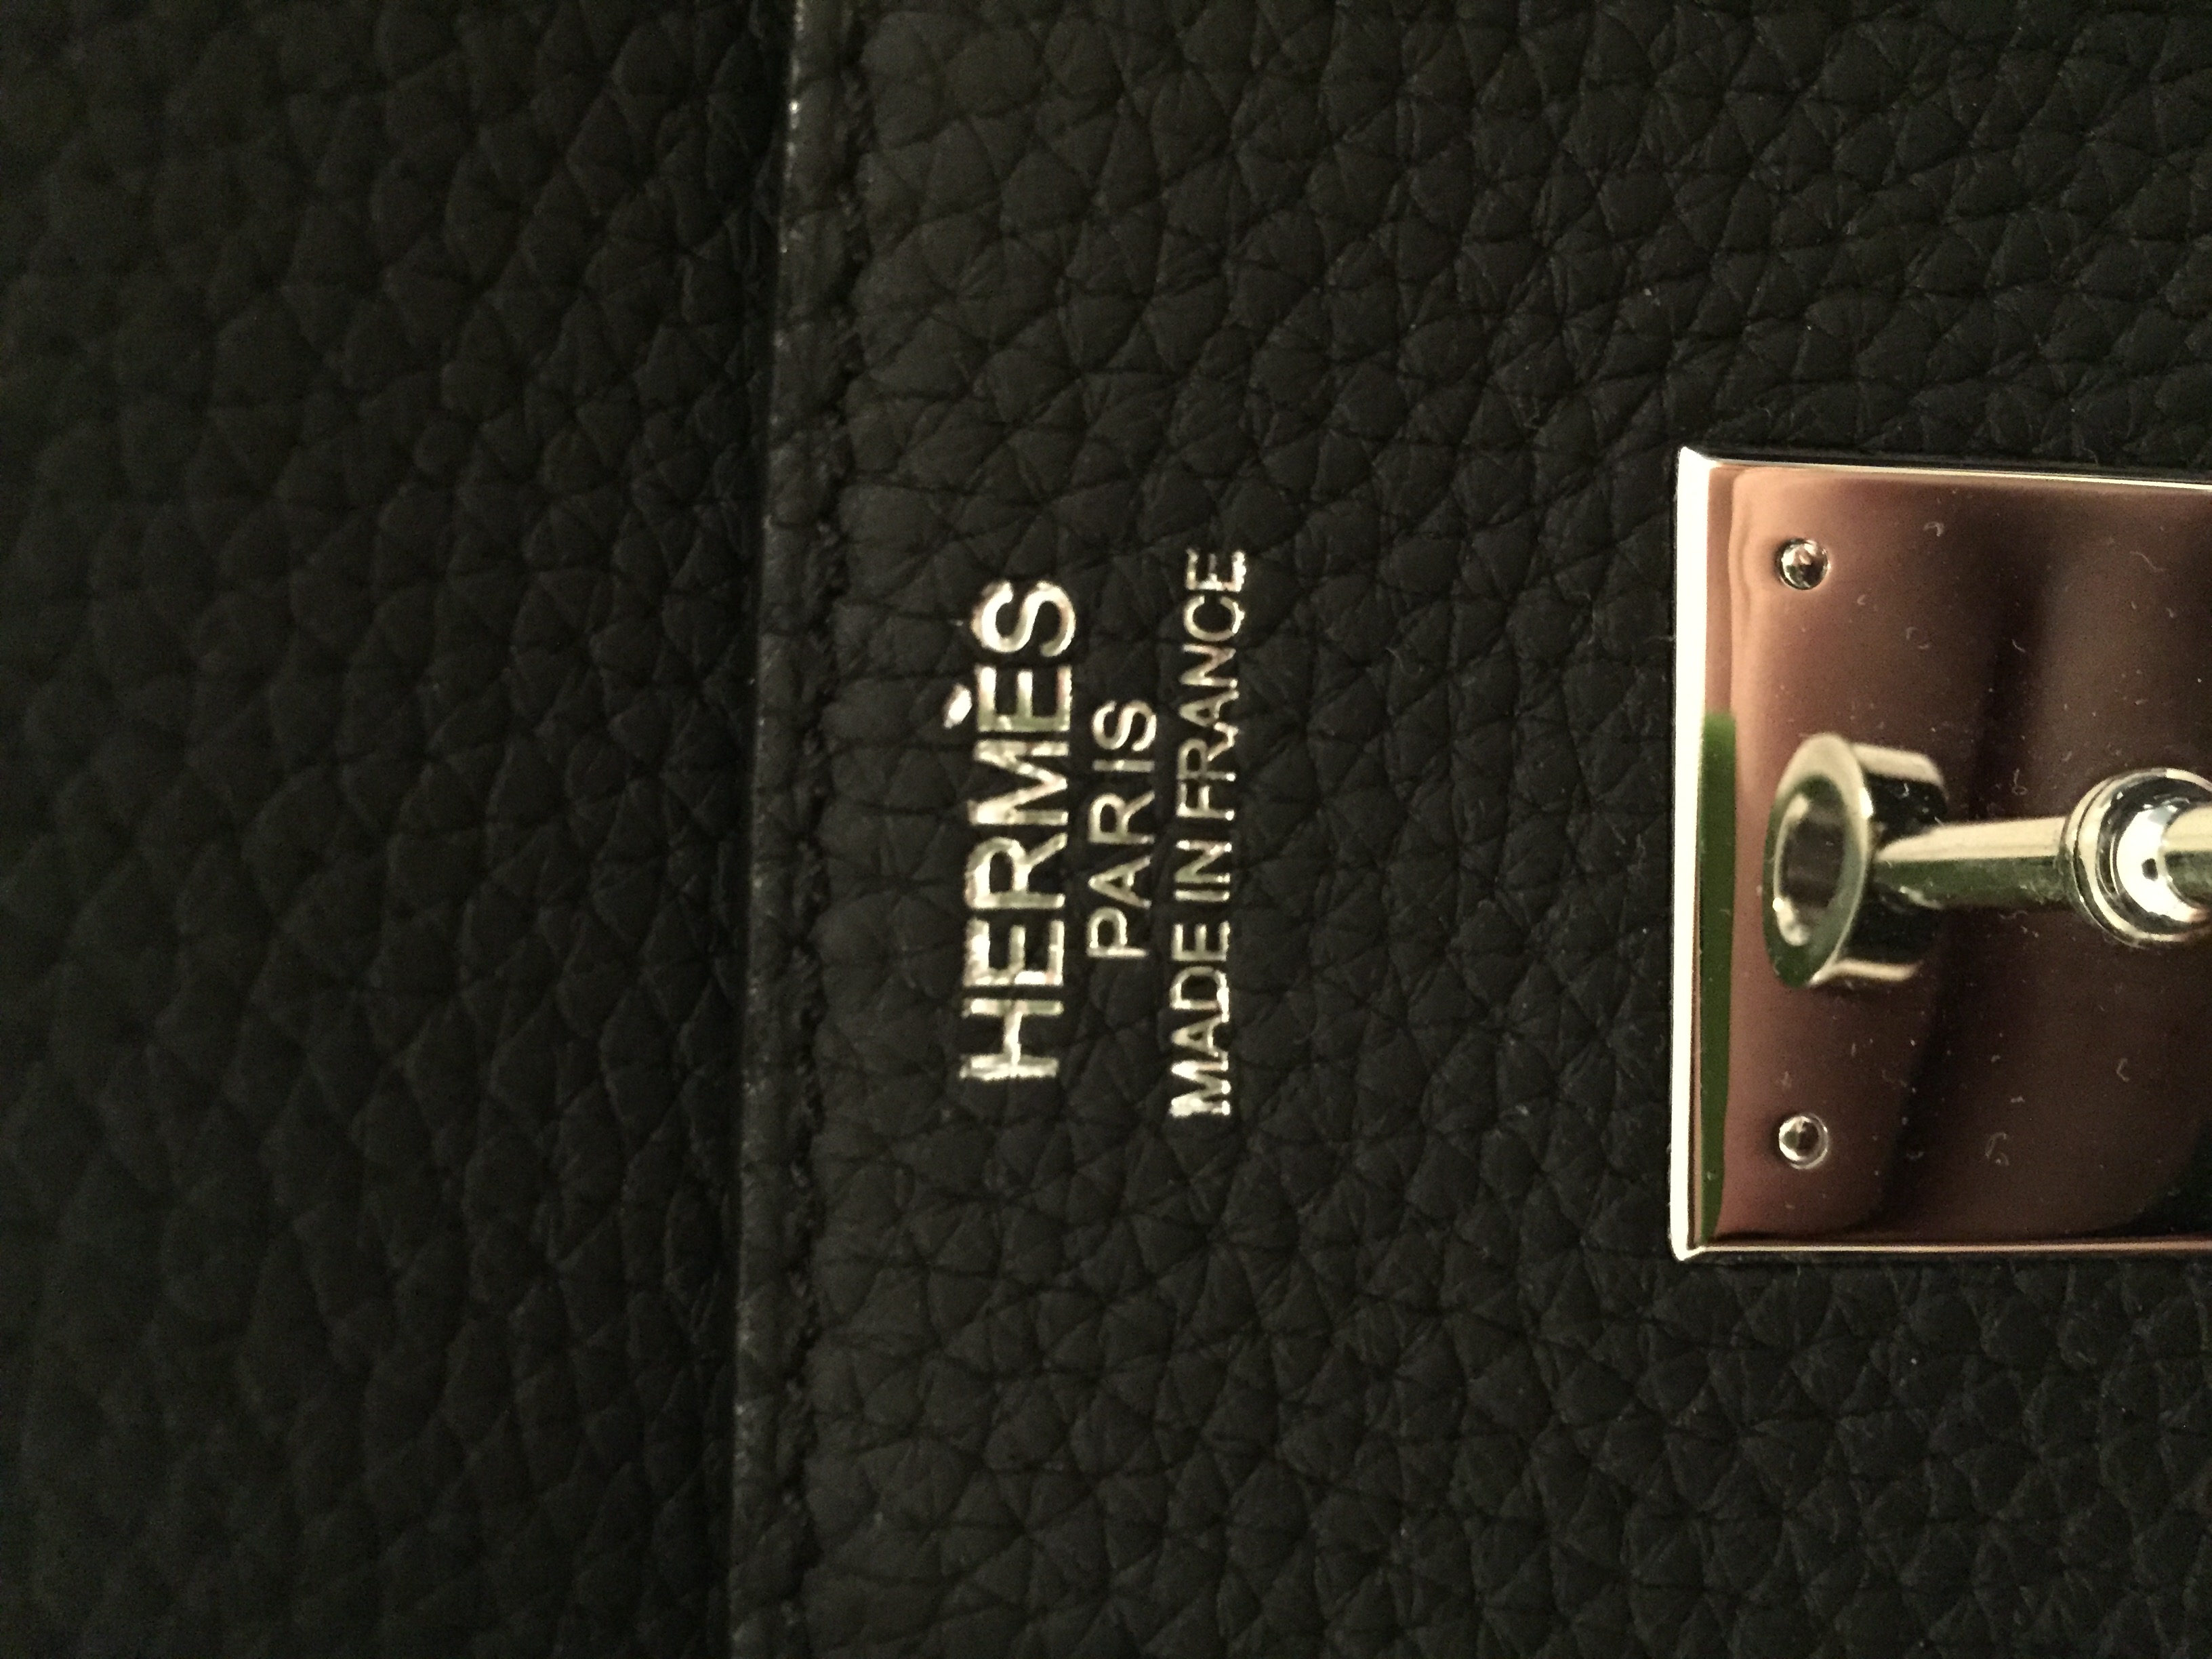 71b114644020 Can you help me spot if my birkin is fake  Thanks!